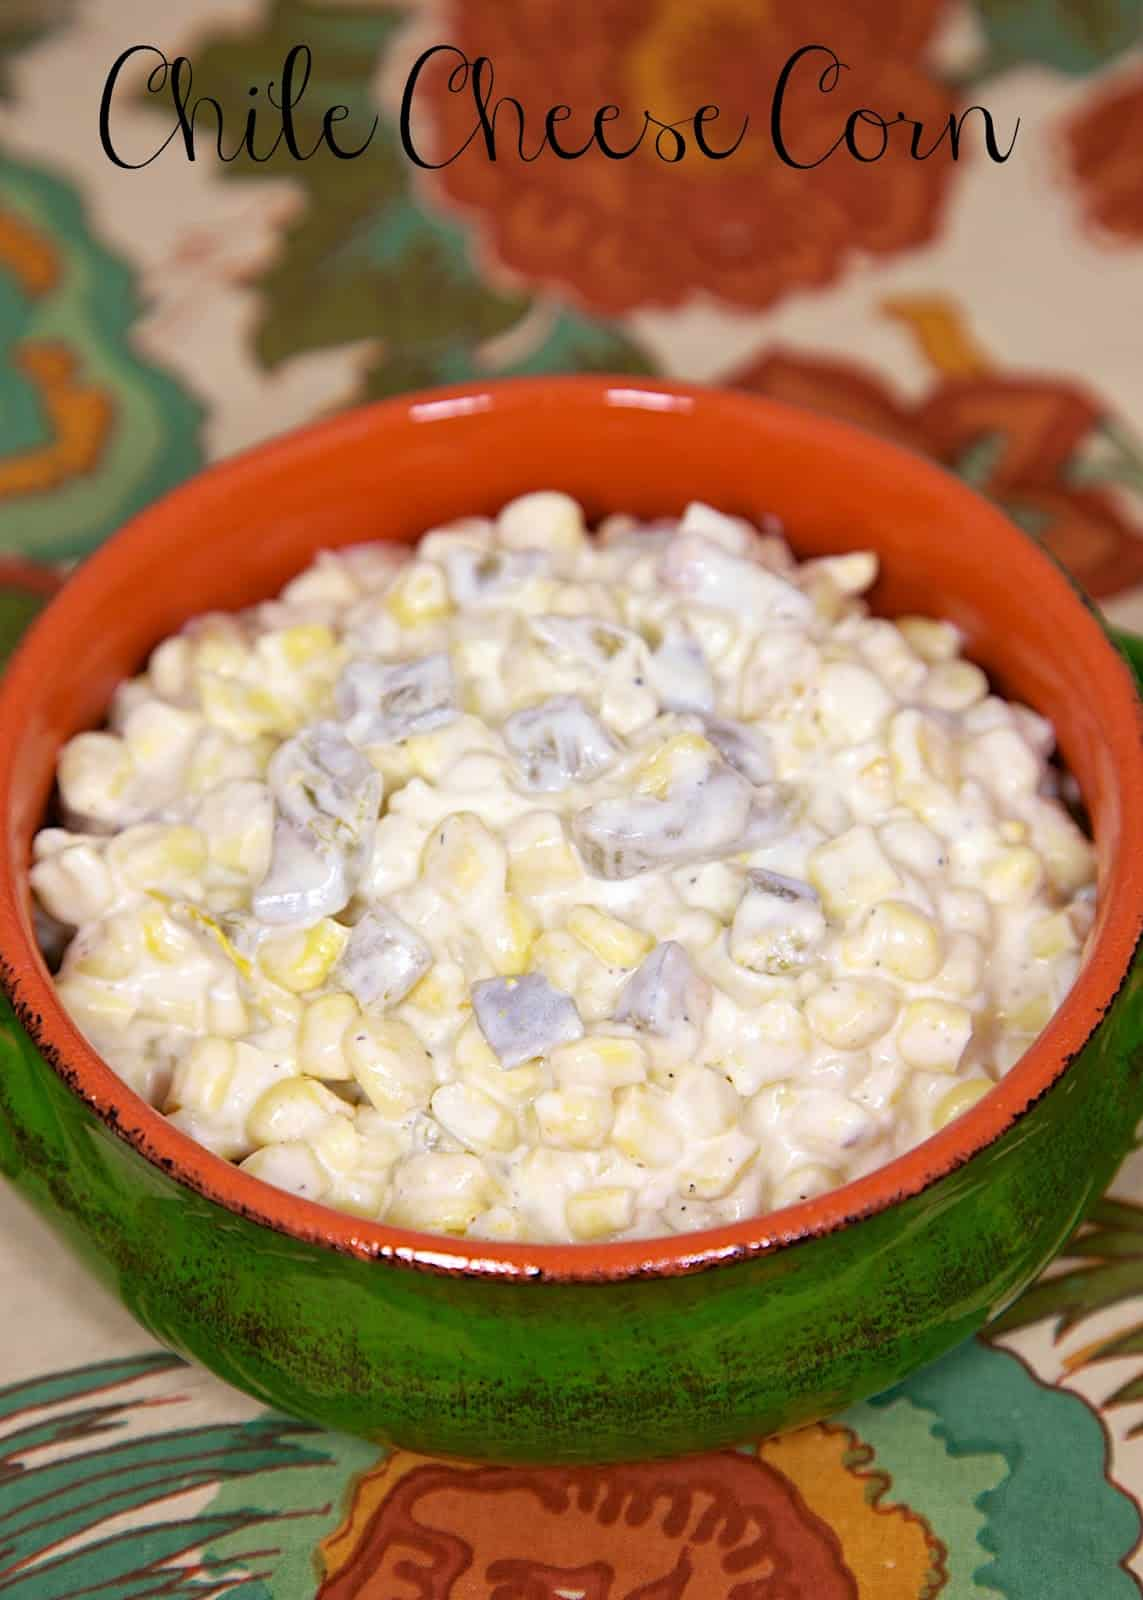 Chile Cheese Corn Recipe - corn, cream cheese, green chiles and spices - super quick side dish that is ready in under 10 minutes! Great with tacos and fajitas!